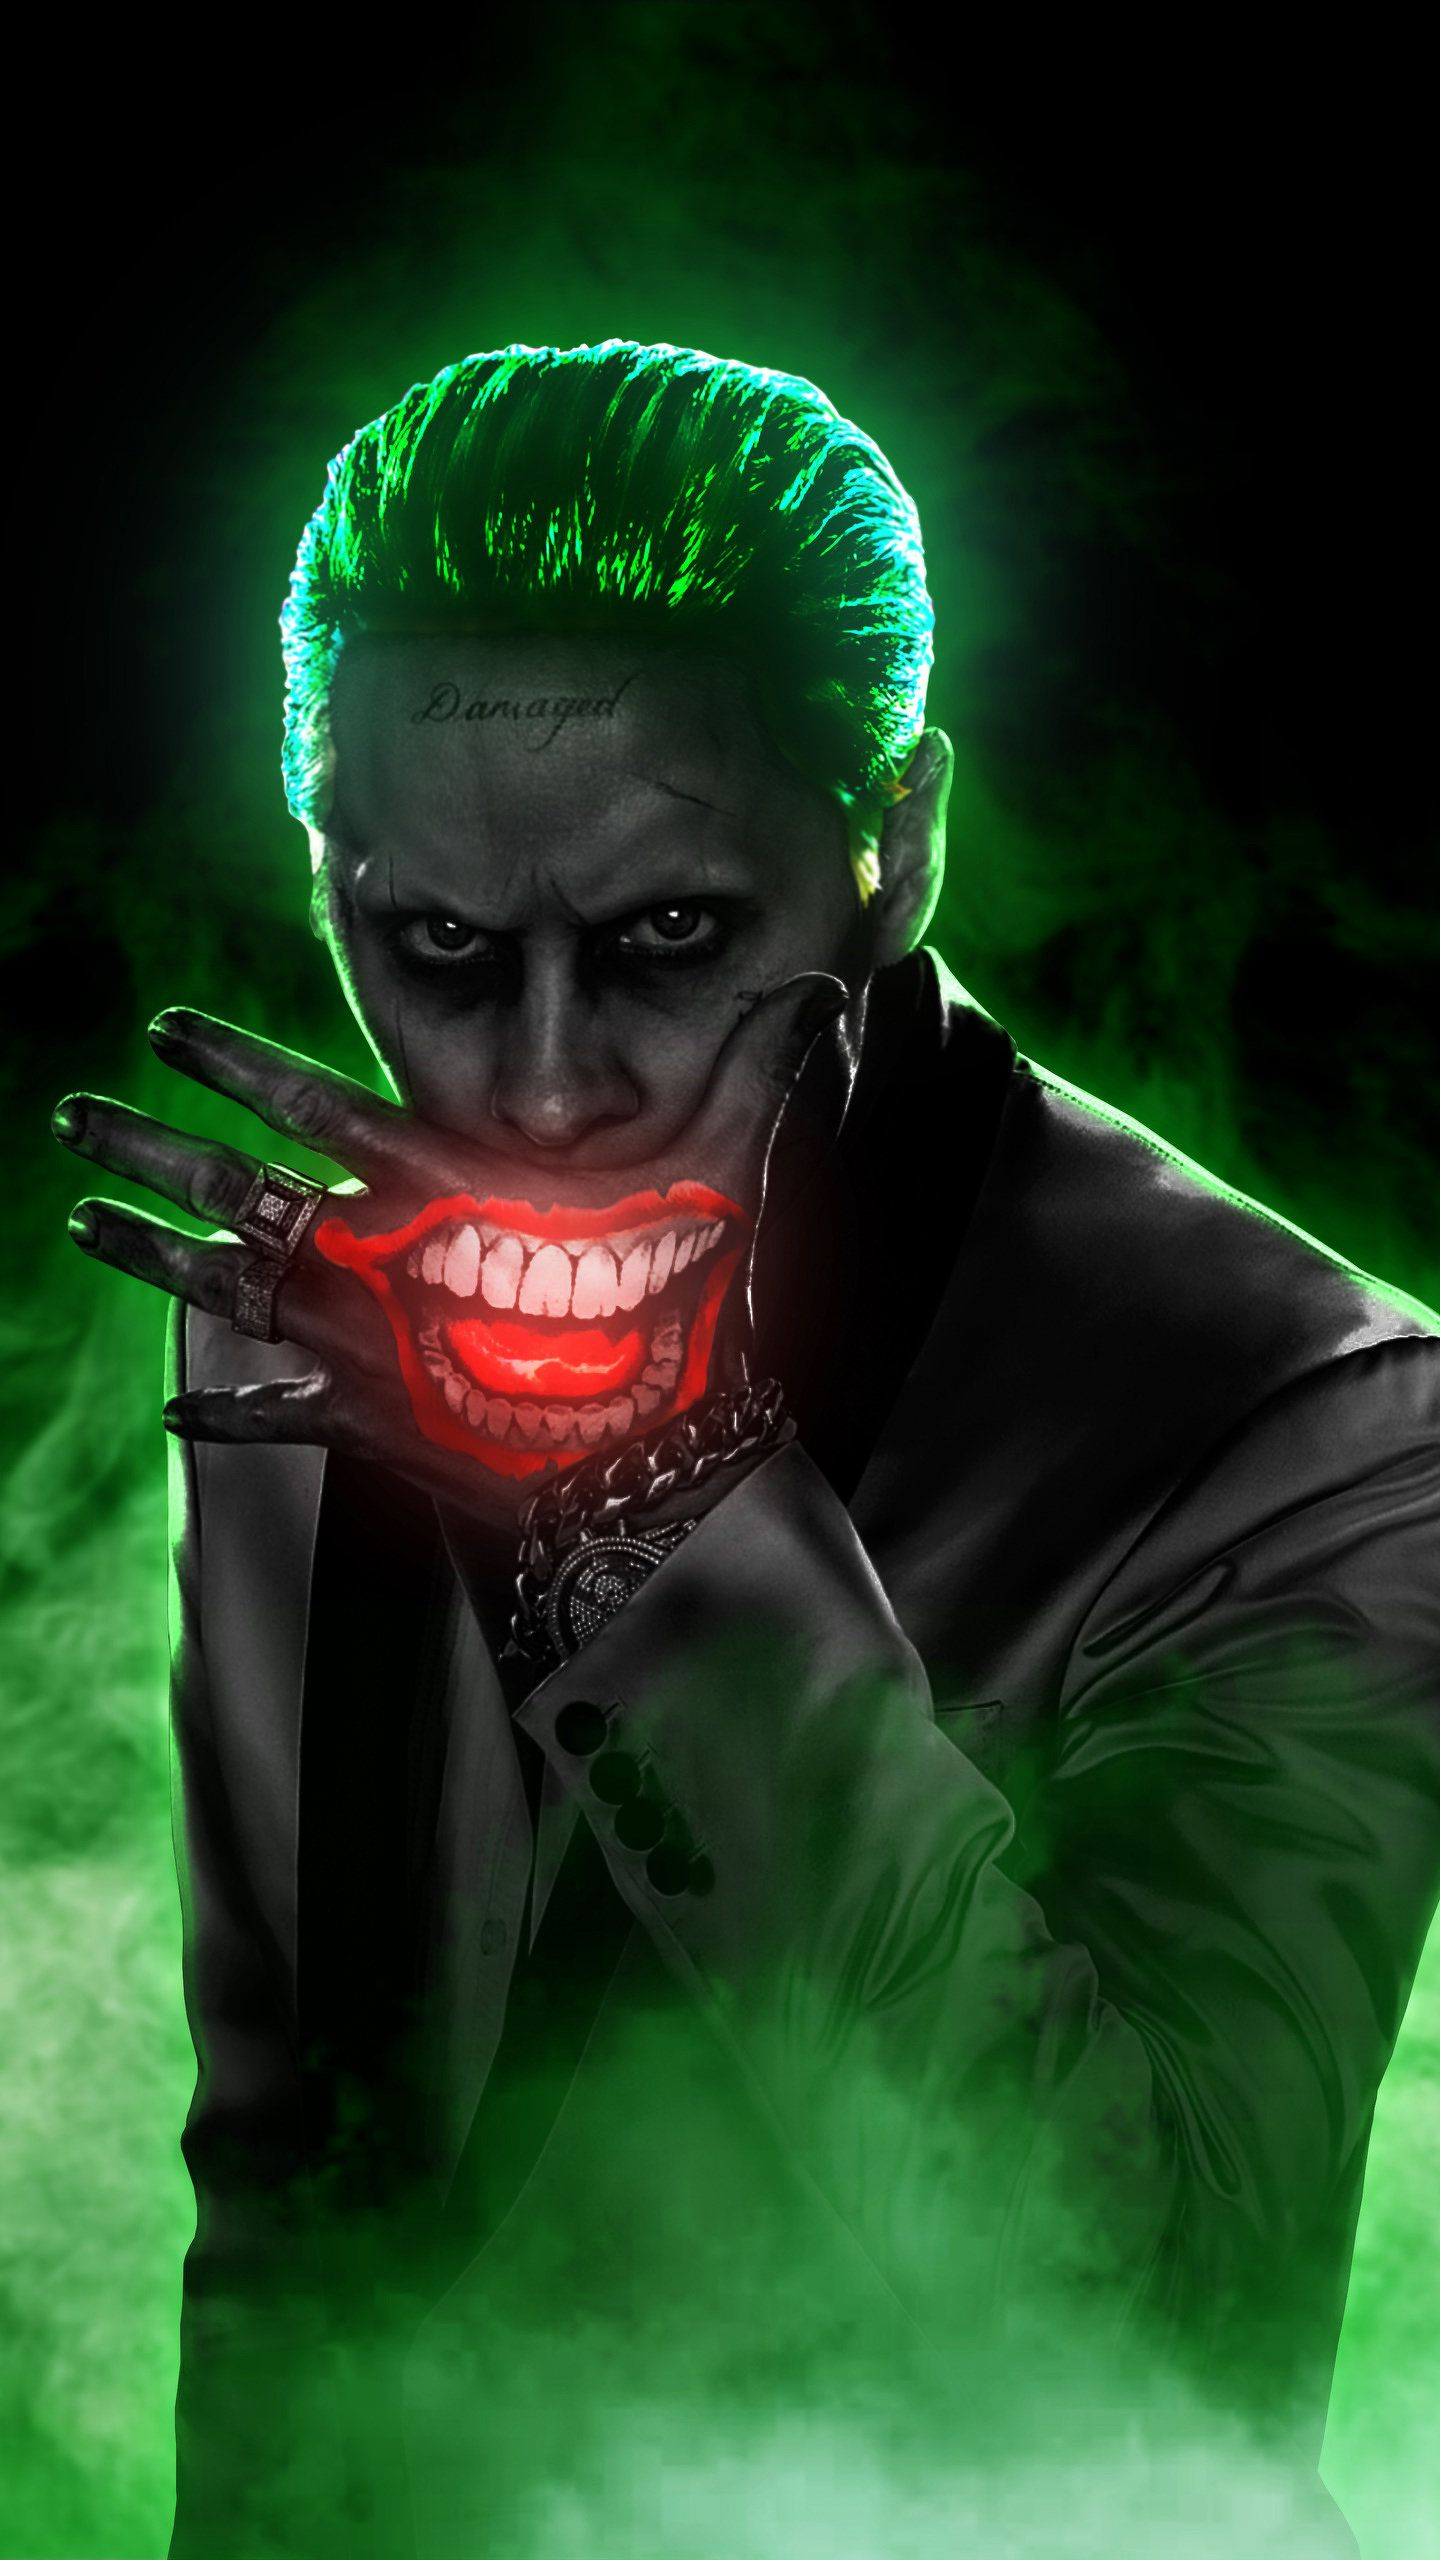 Jared Leto Joker 4k Hd Wallpaper 1440x2560 Dengan Gambar